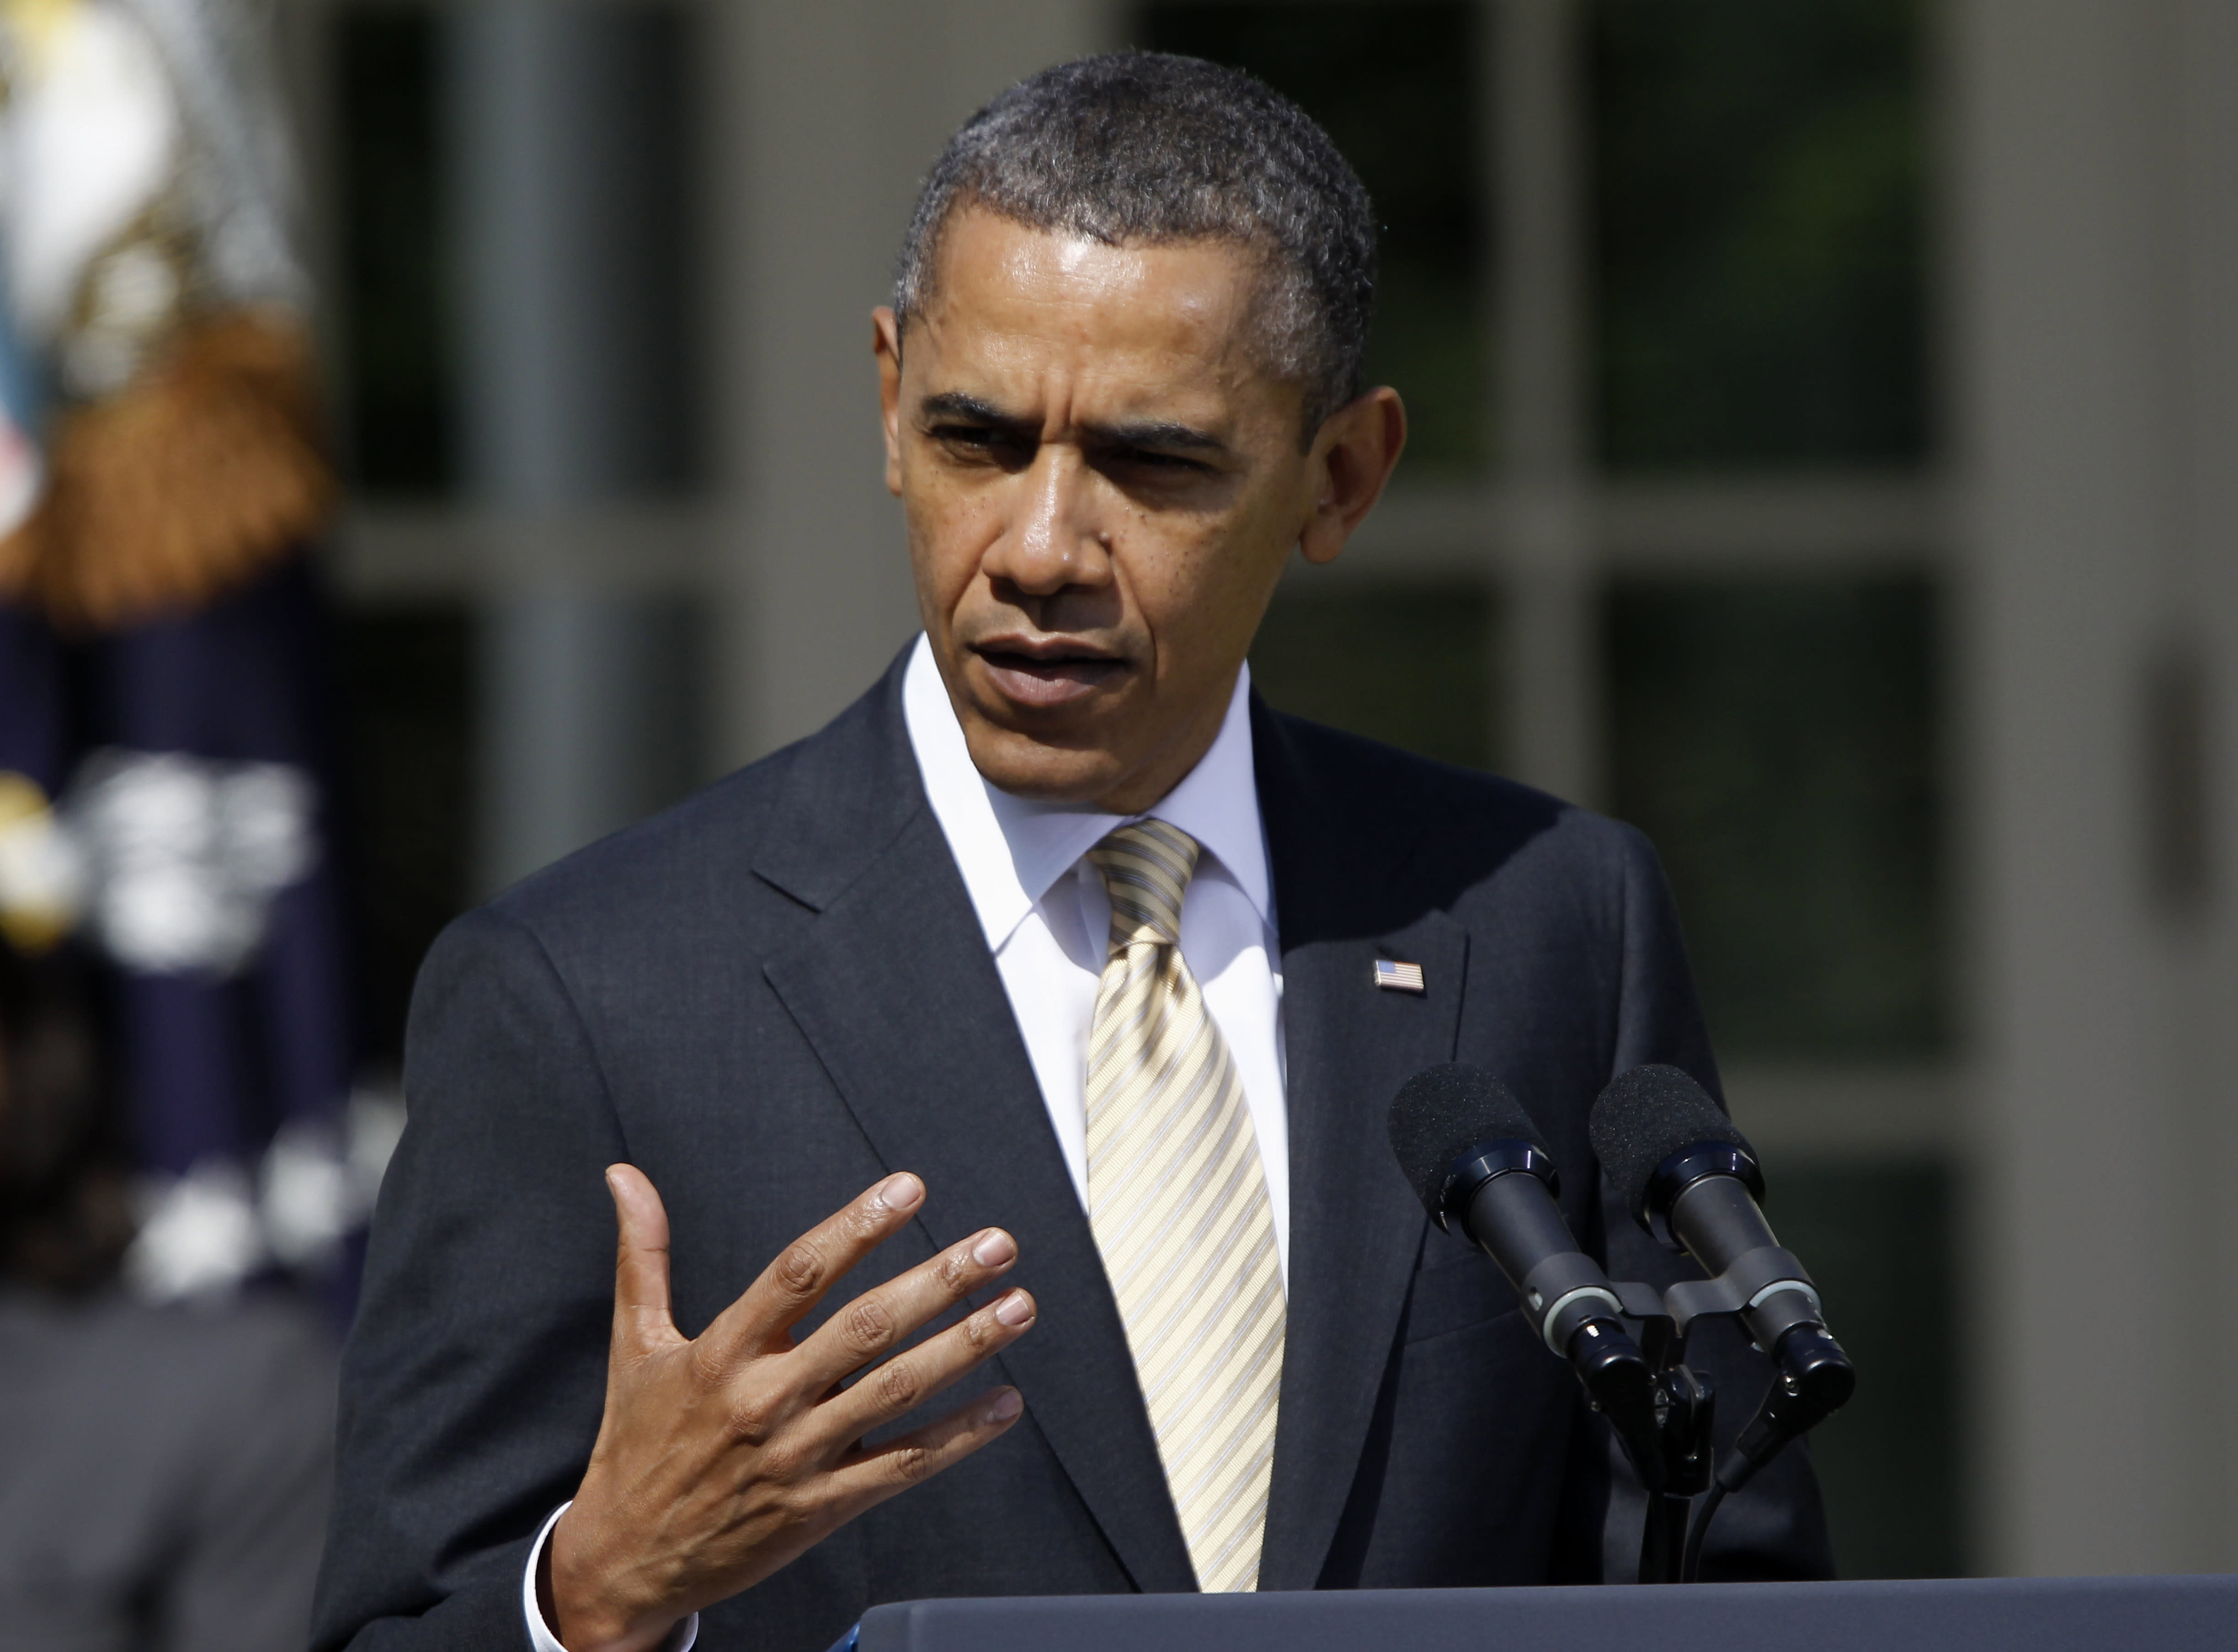 President Barack Obama speaks in the Rose Garden of the White House in Washington, Thursday, March 29, 2012, to urge Congress to eliminate tax breaks for oil and gas companies. (AP Photo/Charles Dharapak)